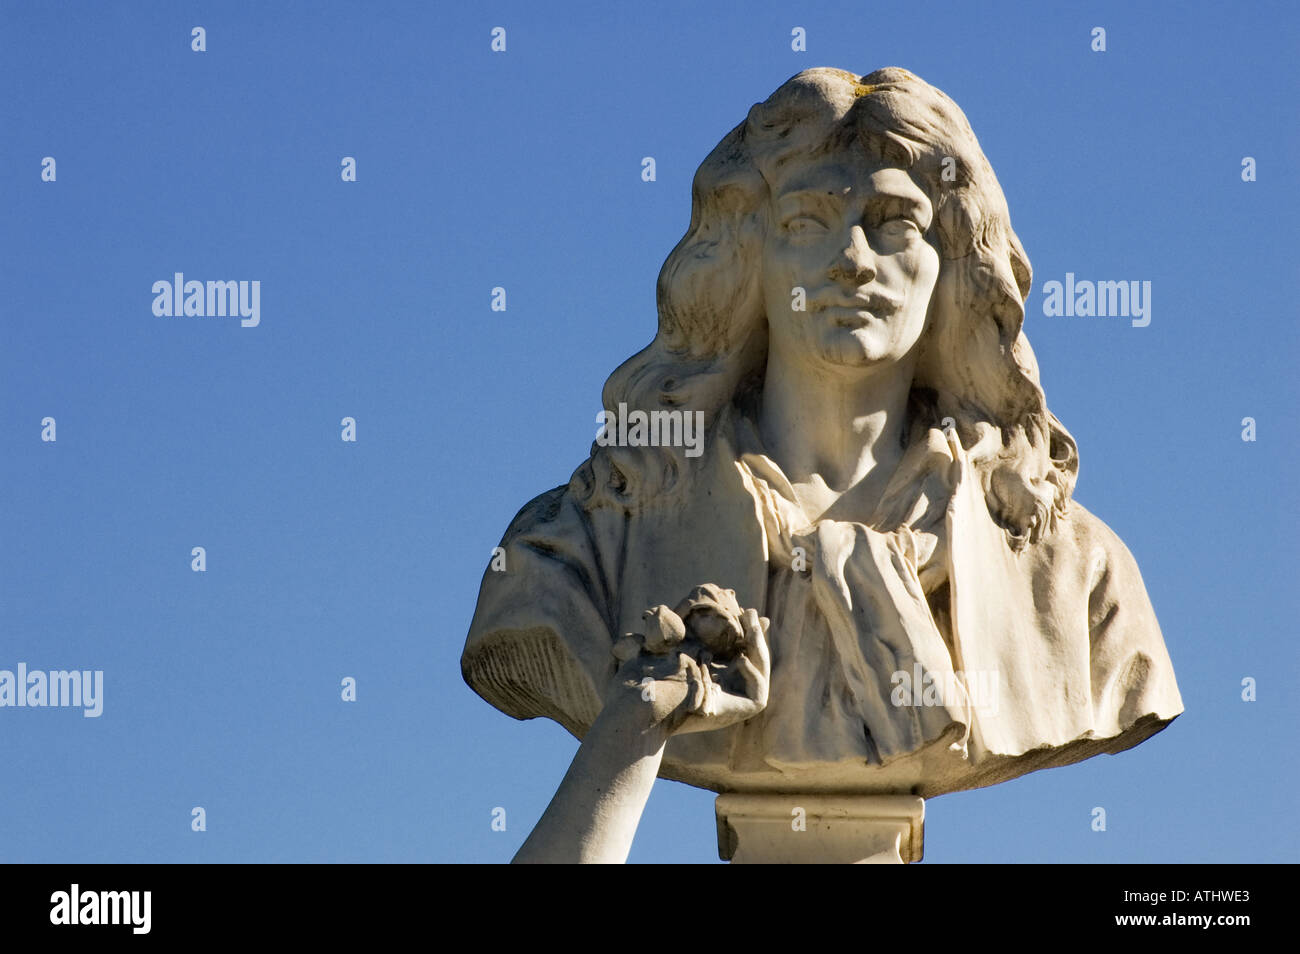 Molière: Moliere Statue Stock Photos & Moliere Statue Stock Images